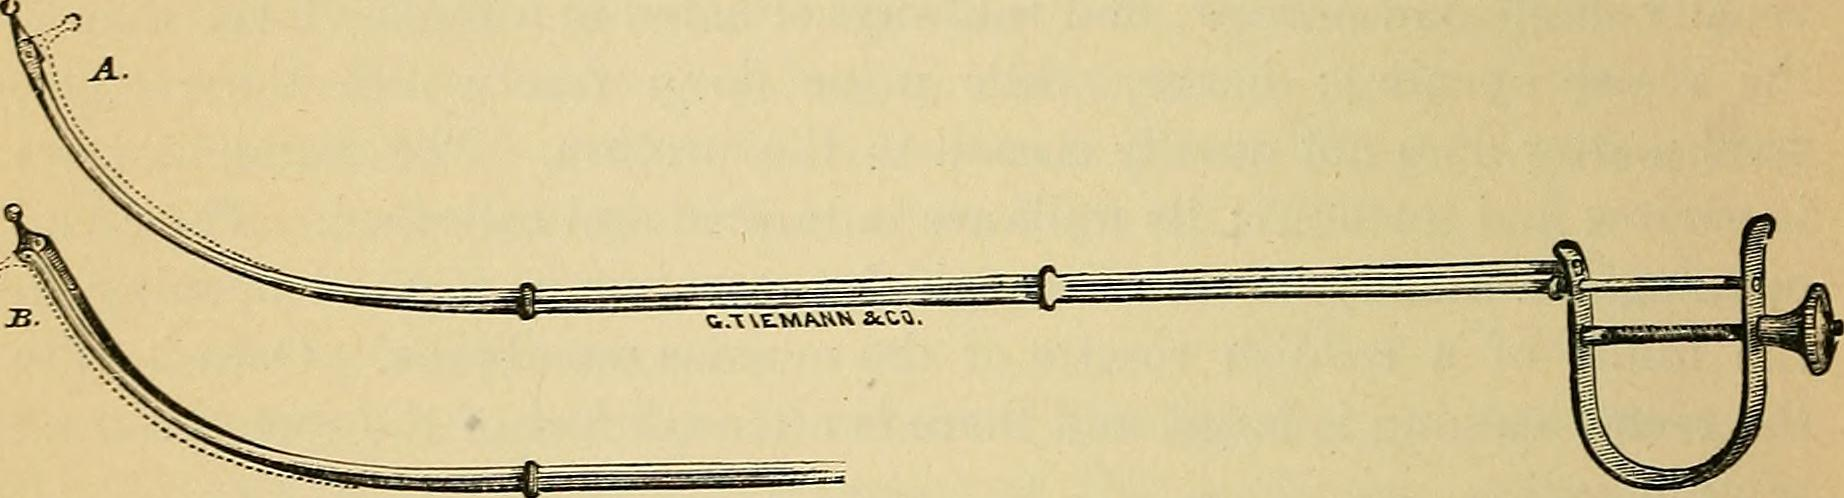 Diagram of Ben Franklin's Urinary Catheter Invention